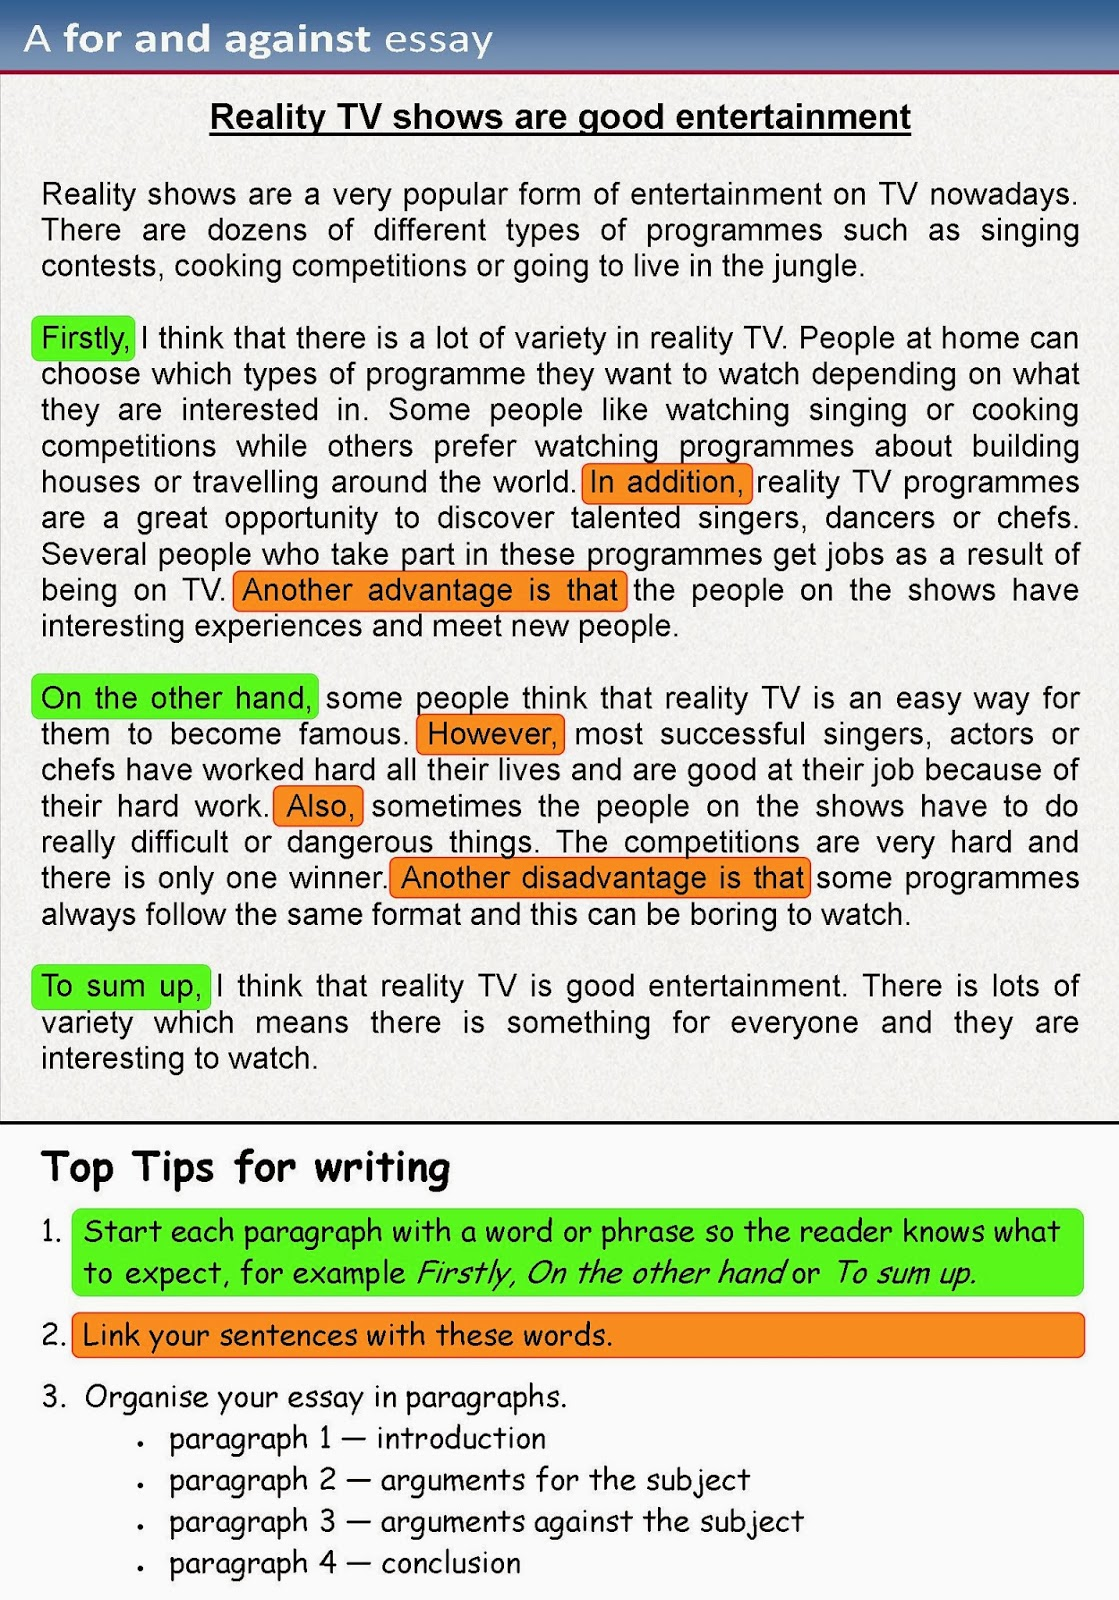 3 1 essay English 1a - essay 3 - spring 2018 here are some handouts and materials to help you organize and write essay 3: english 1a - blank outline [ms word doc] english 1a - blank outline [pdf.